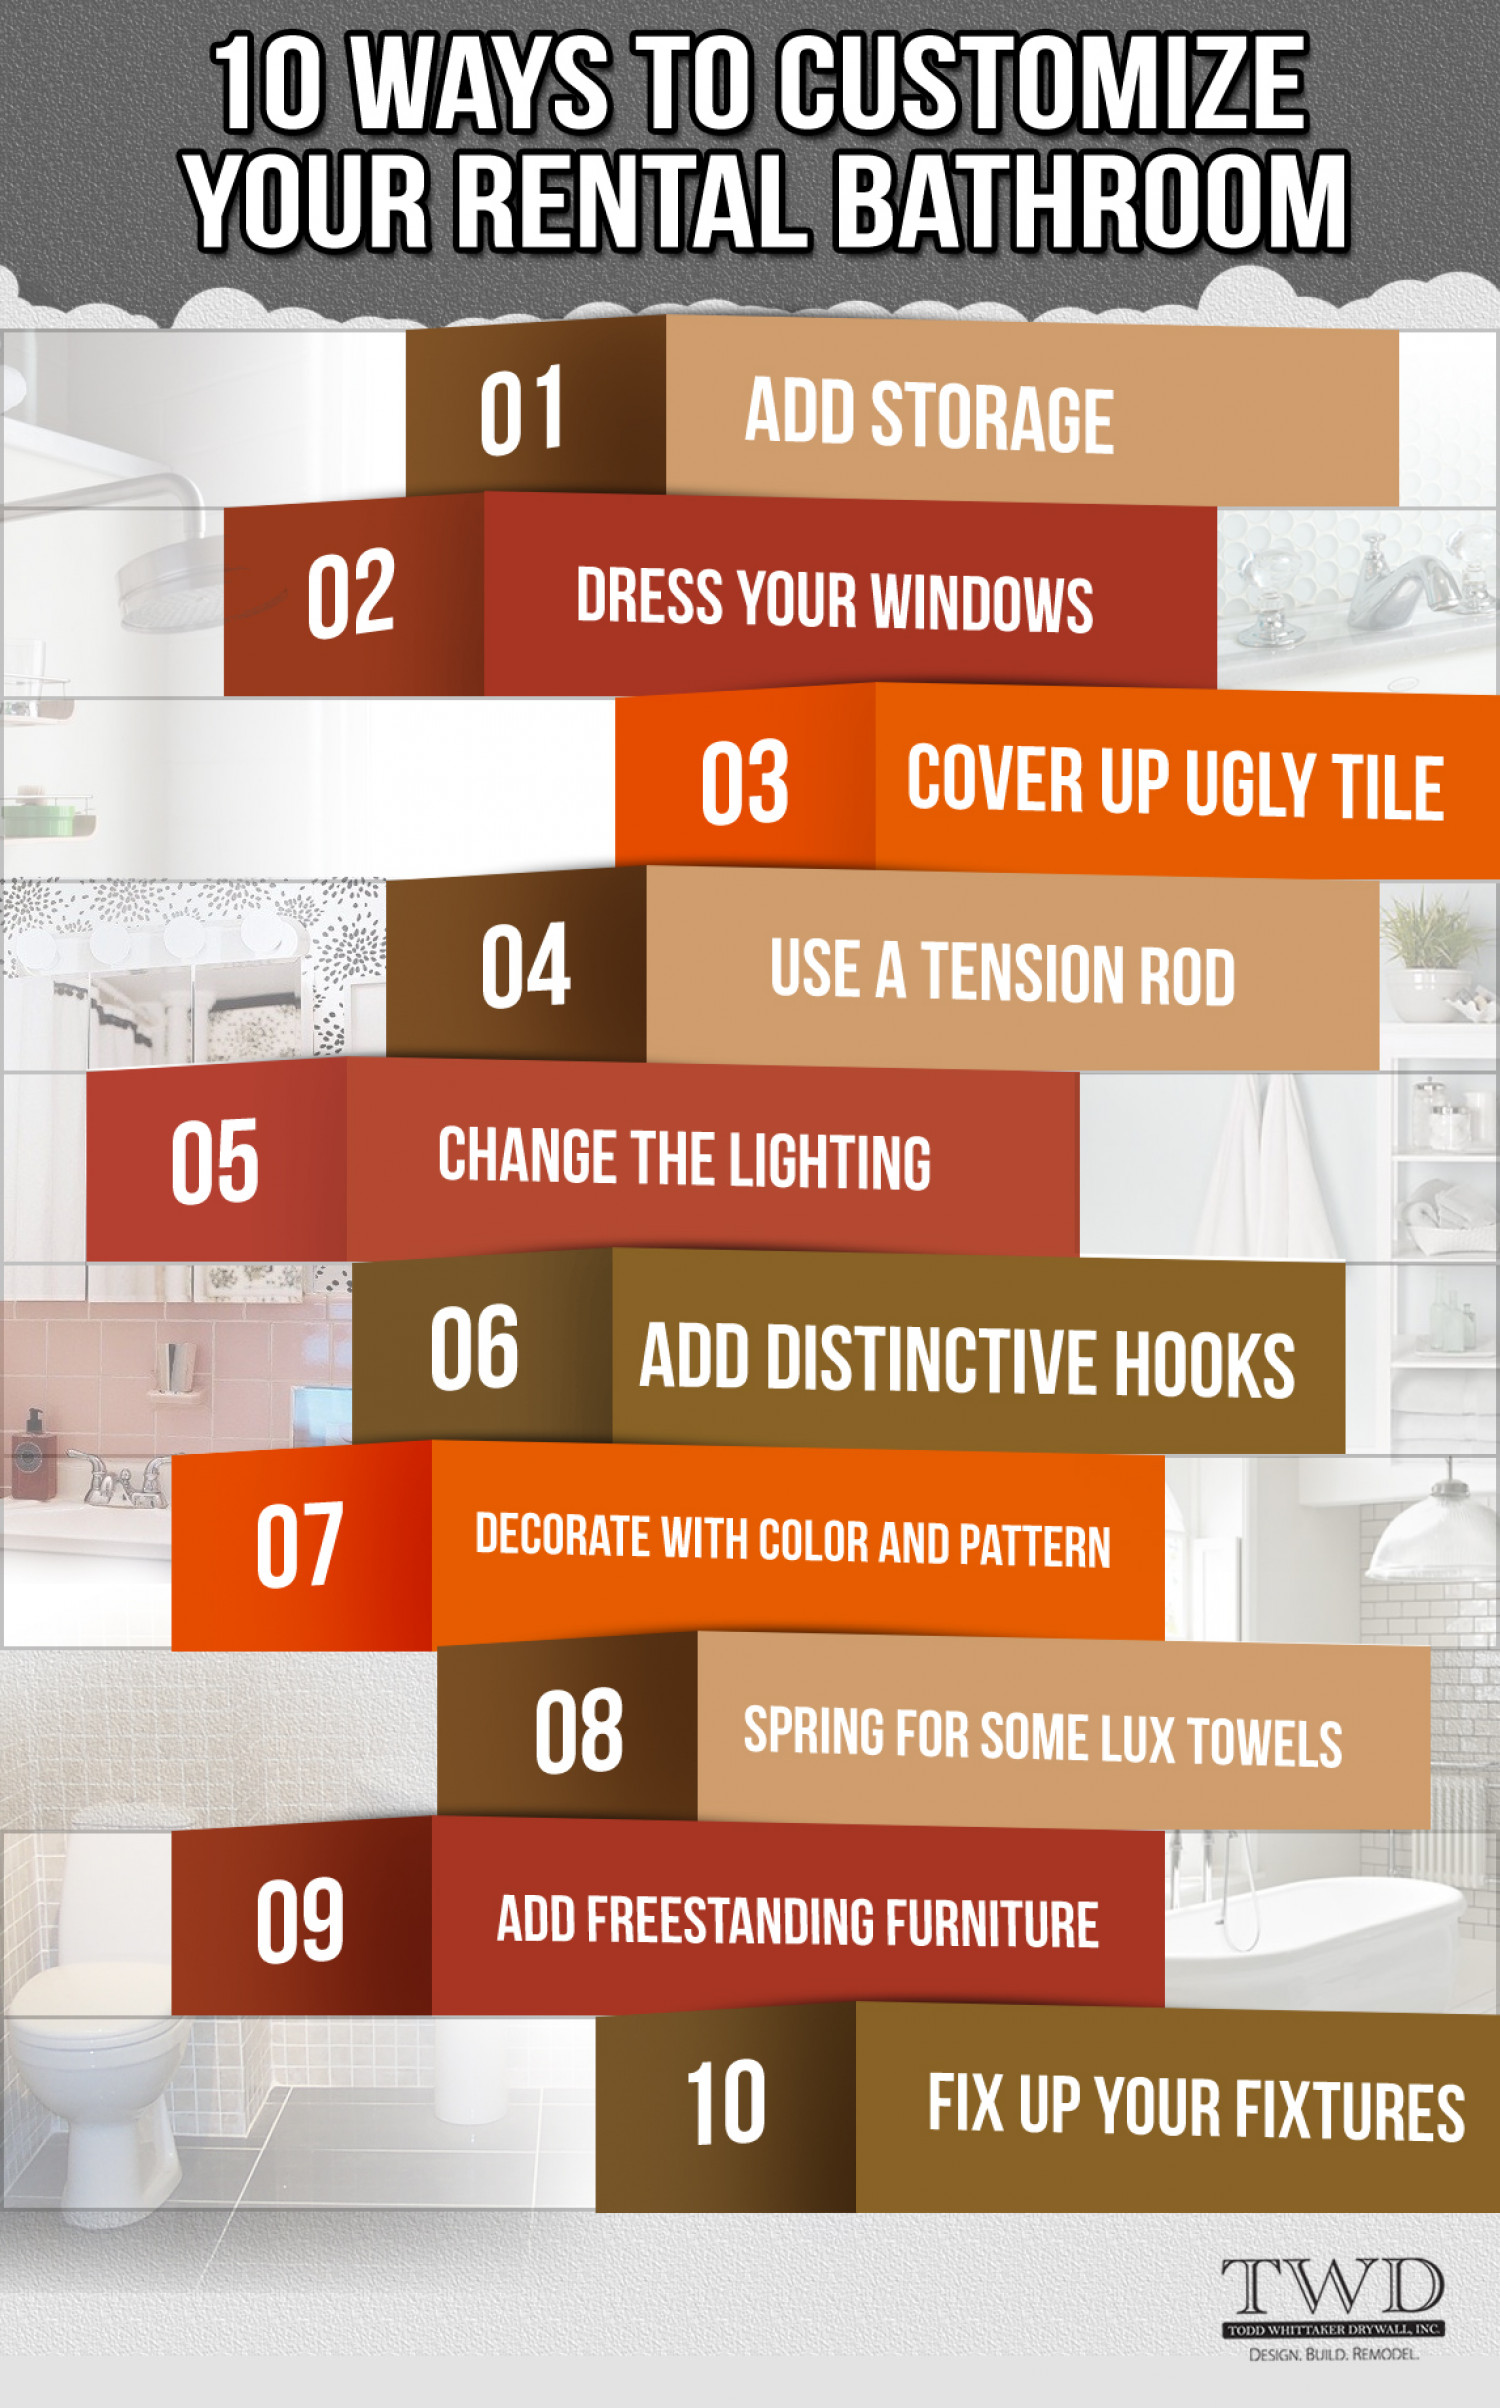 10 Ways to Customize Rental Bathroom Infographic